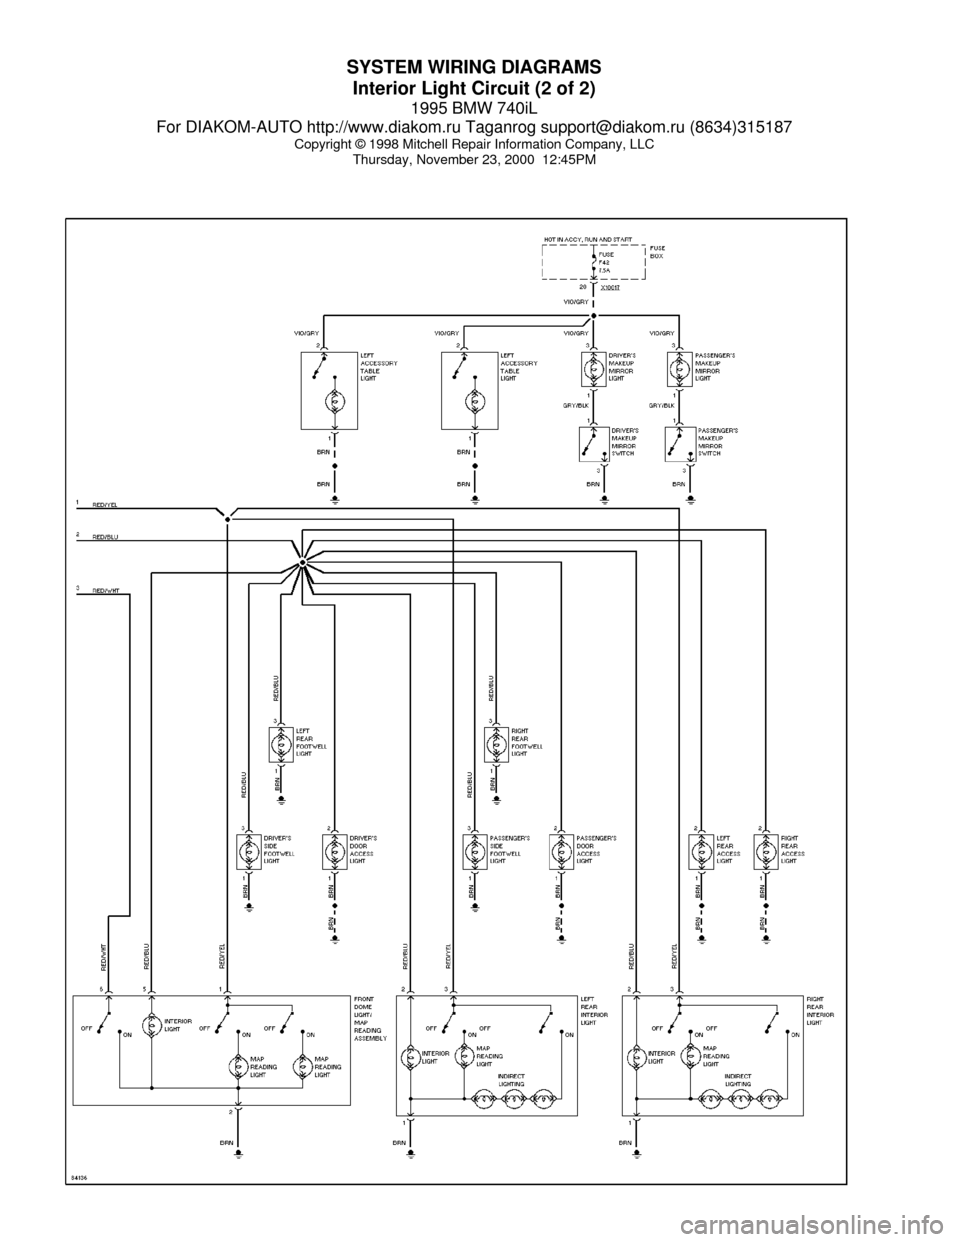 ... w960_2820 35 bmw 740il 1995 e38 system wiring diagrams Universal Wiper  Motor Wiring Diagram at cita